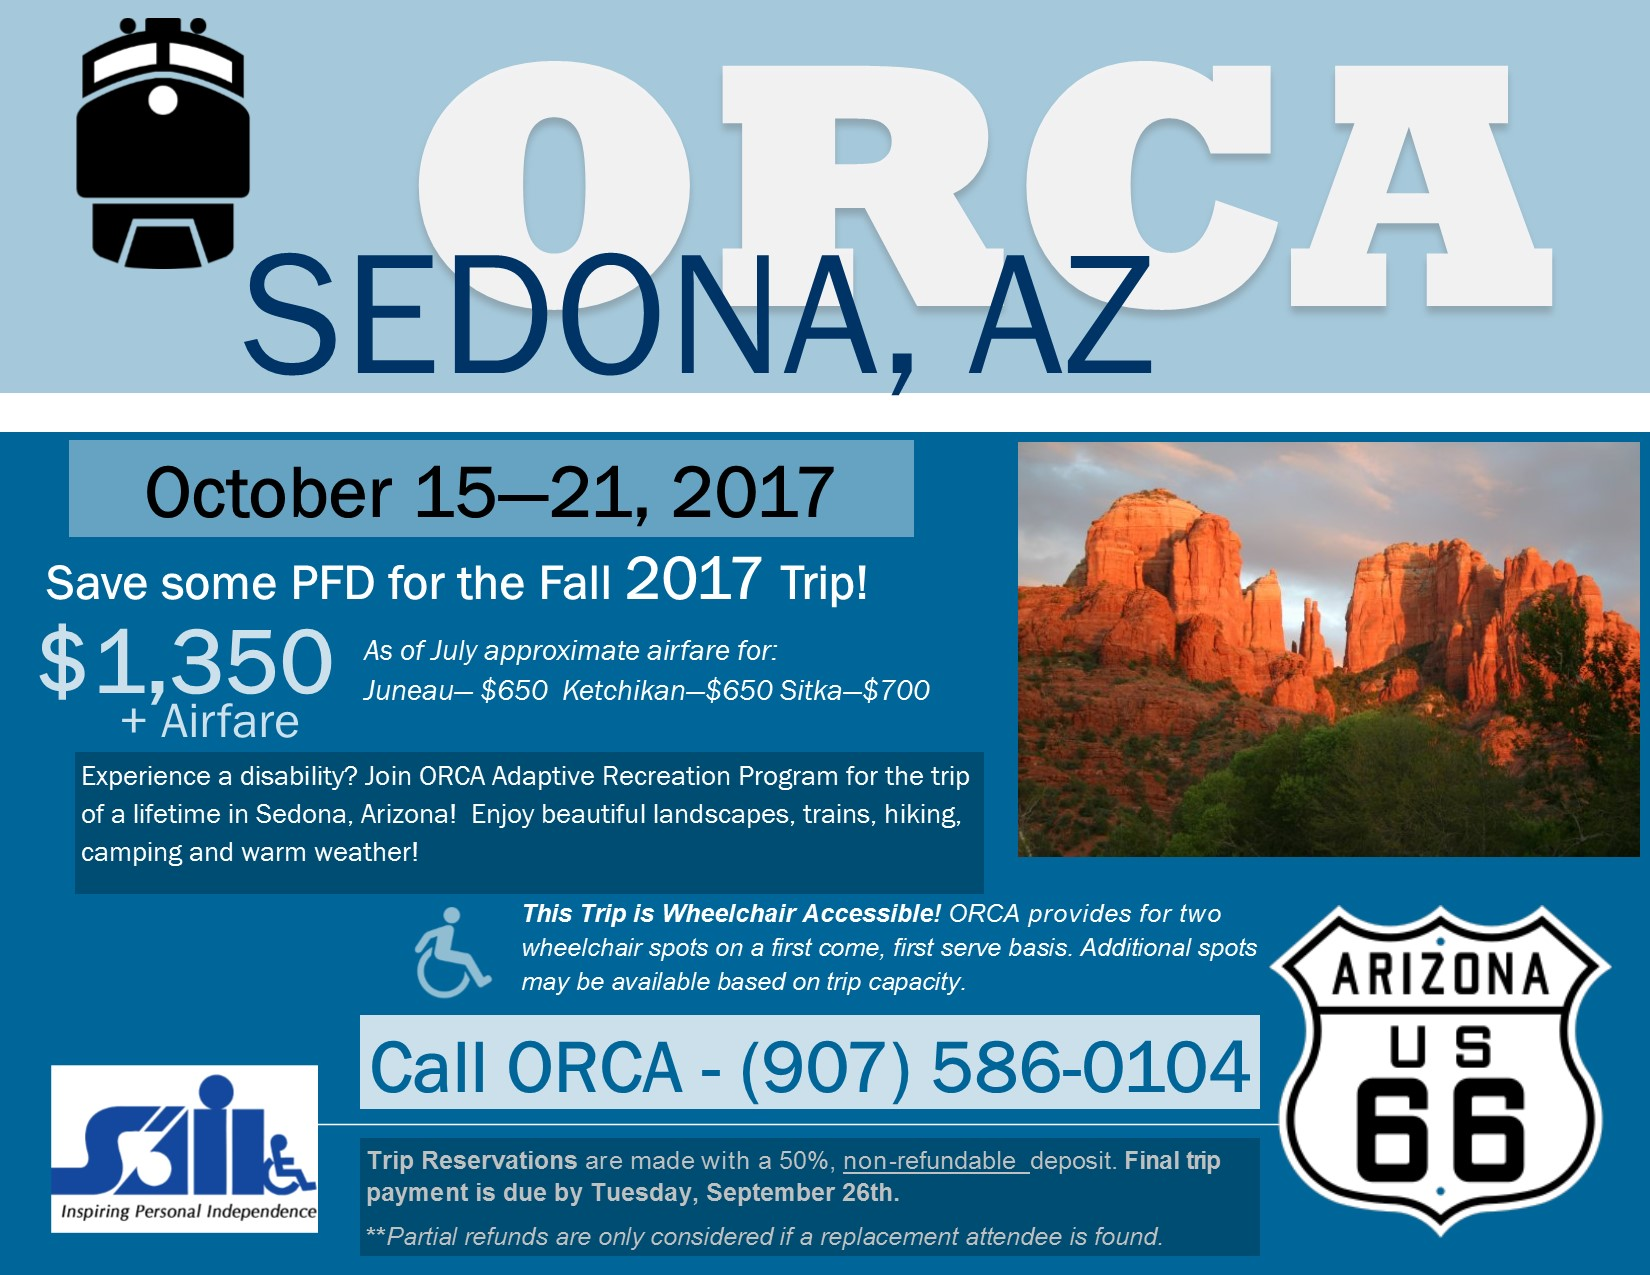 ORCA's headed to Sedona, Arizona from October 15th - 21st. $3500 + Airfare. Call the ORCA office for more information: 907-586-0104